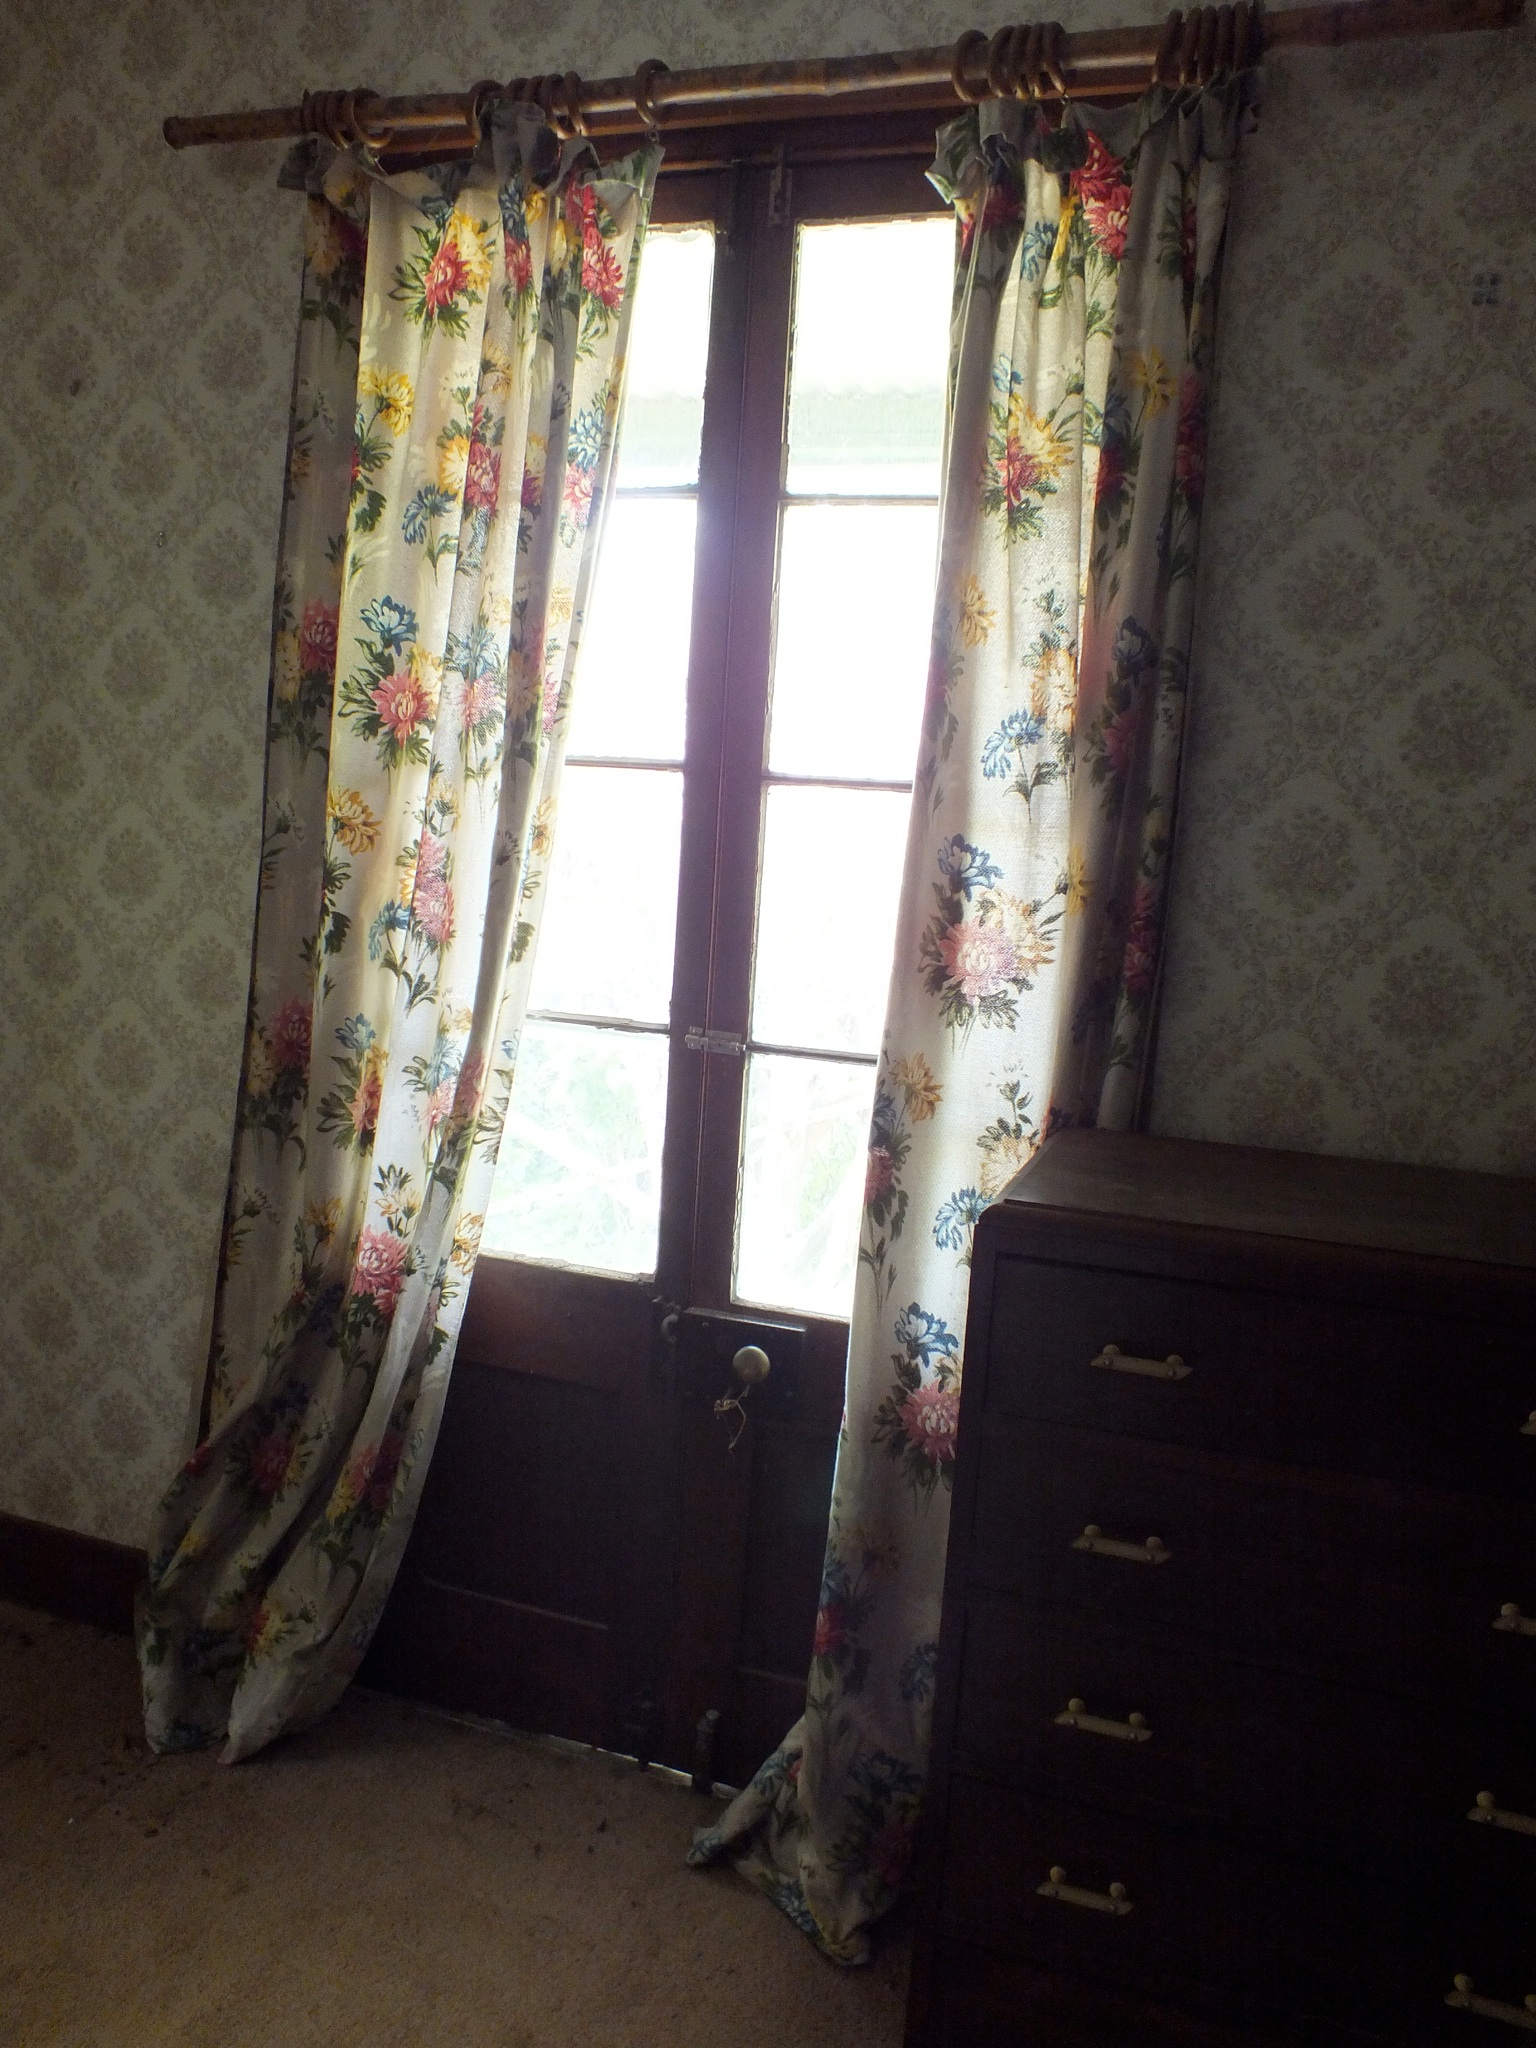 Bedroom veranda doors